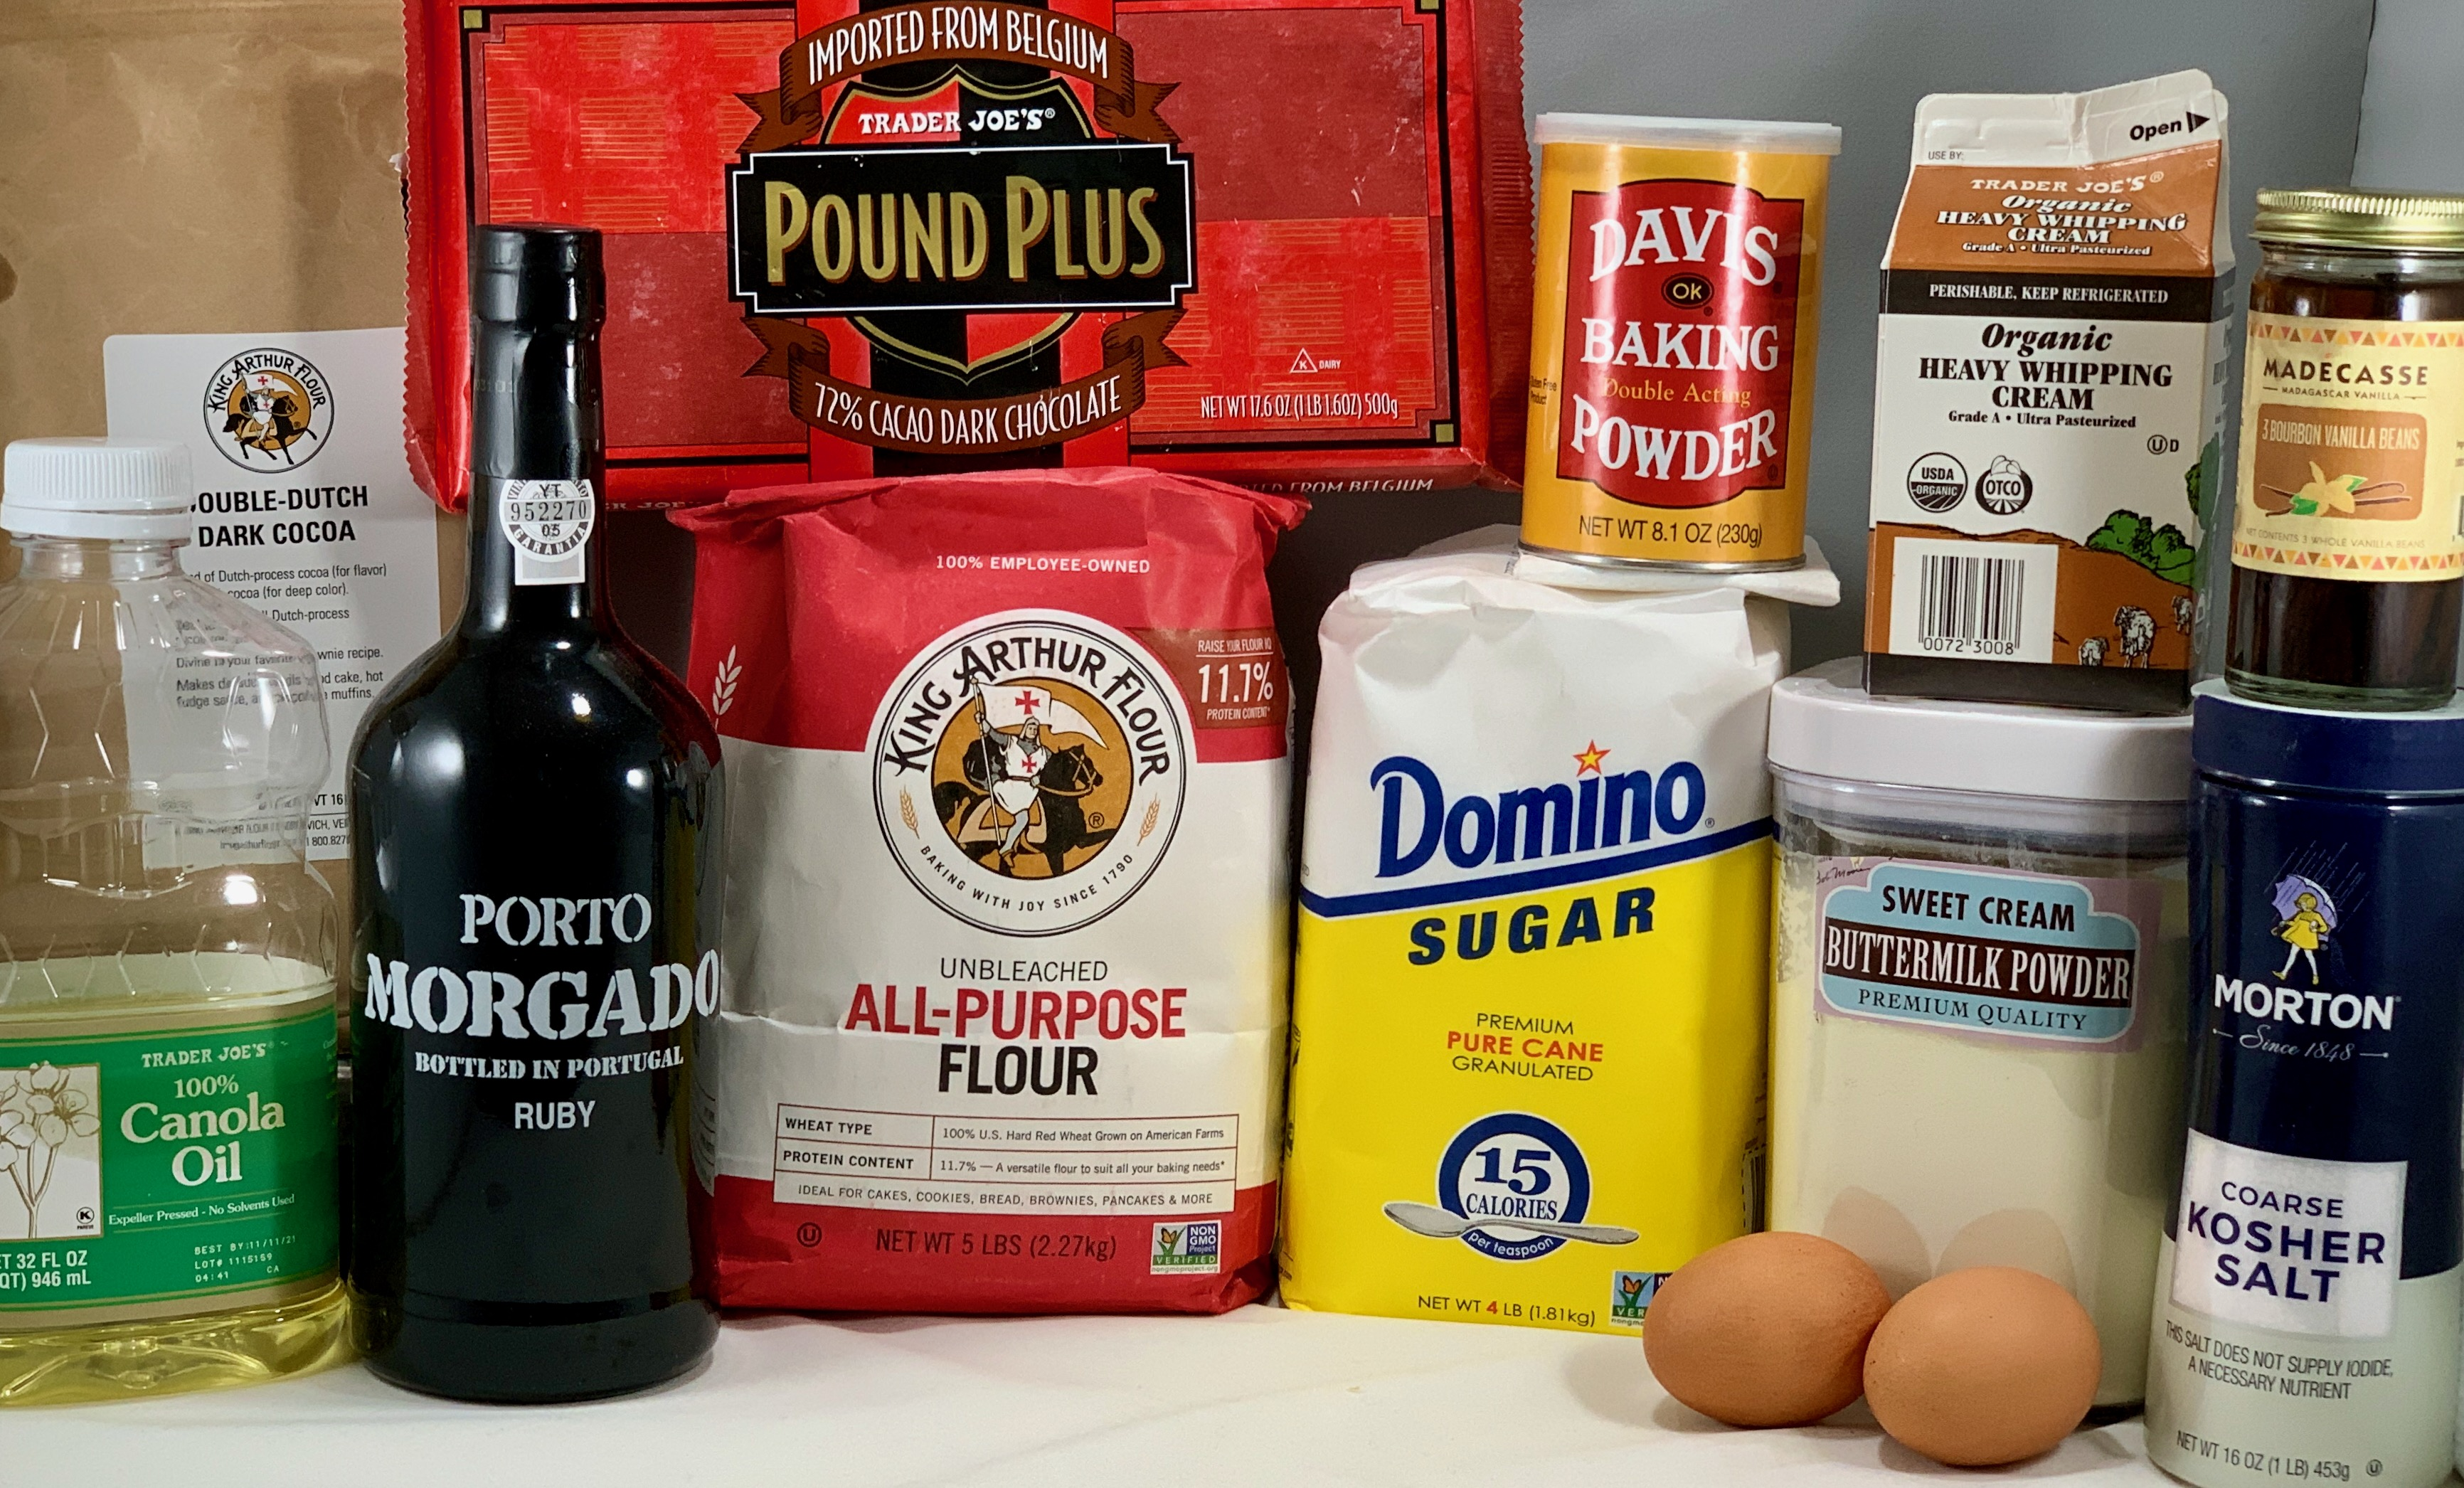 Port Wine Chocolate Cake ingredients in packages